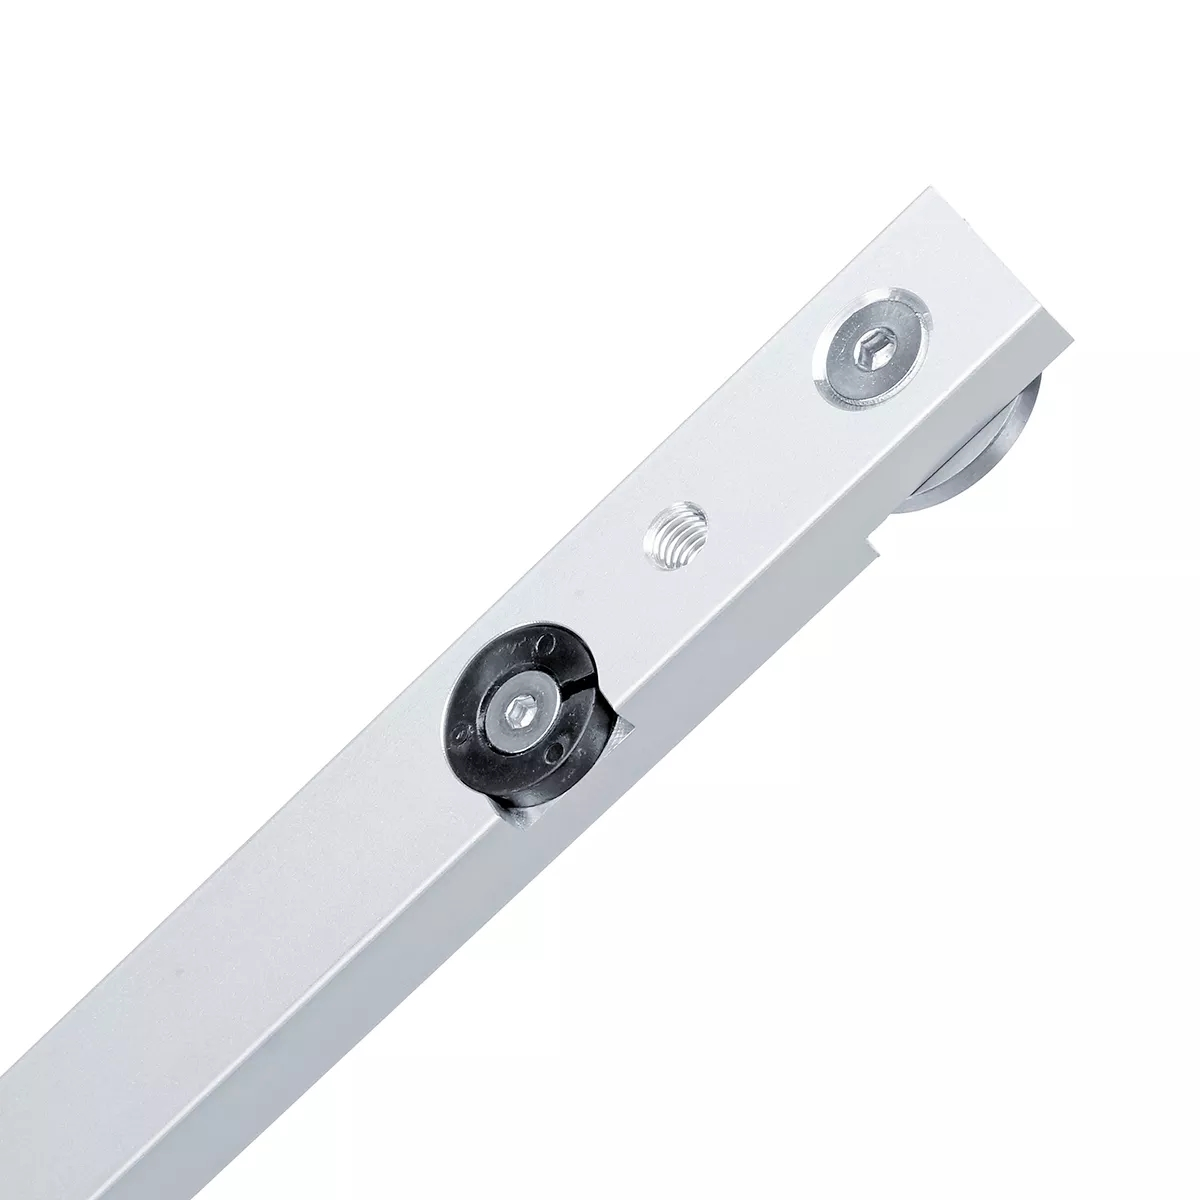 880mm Aluminum Alloy Rail Miter Bar Slider Table Saw Gauge Rod Miter Gauge Woodworking High Quality